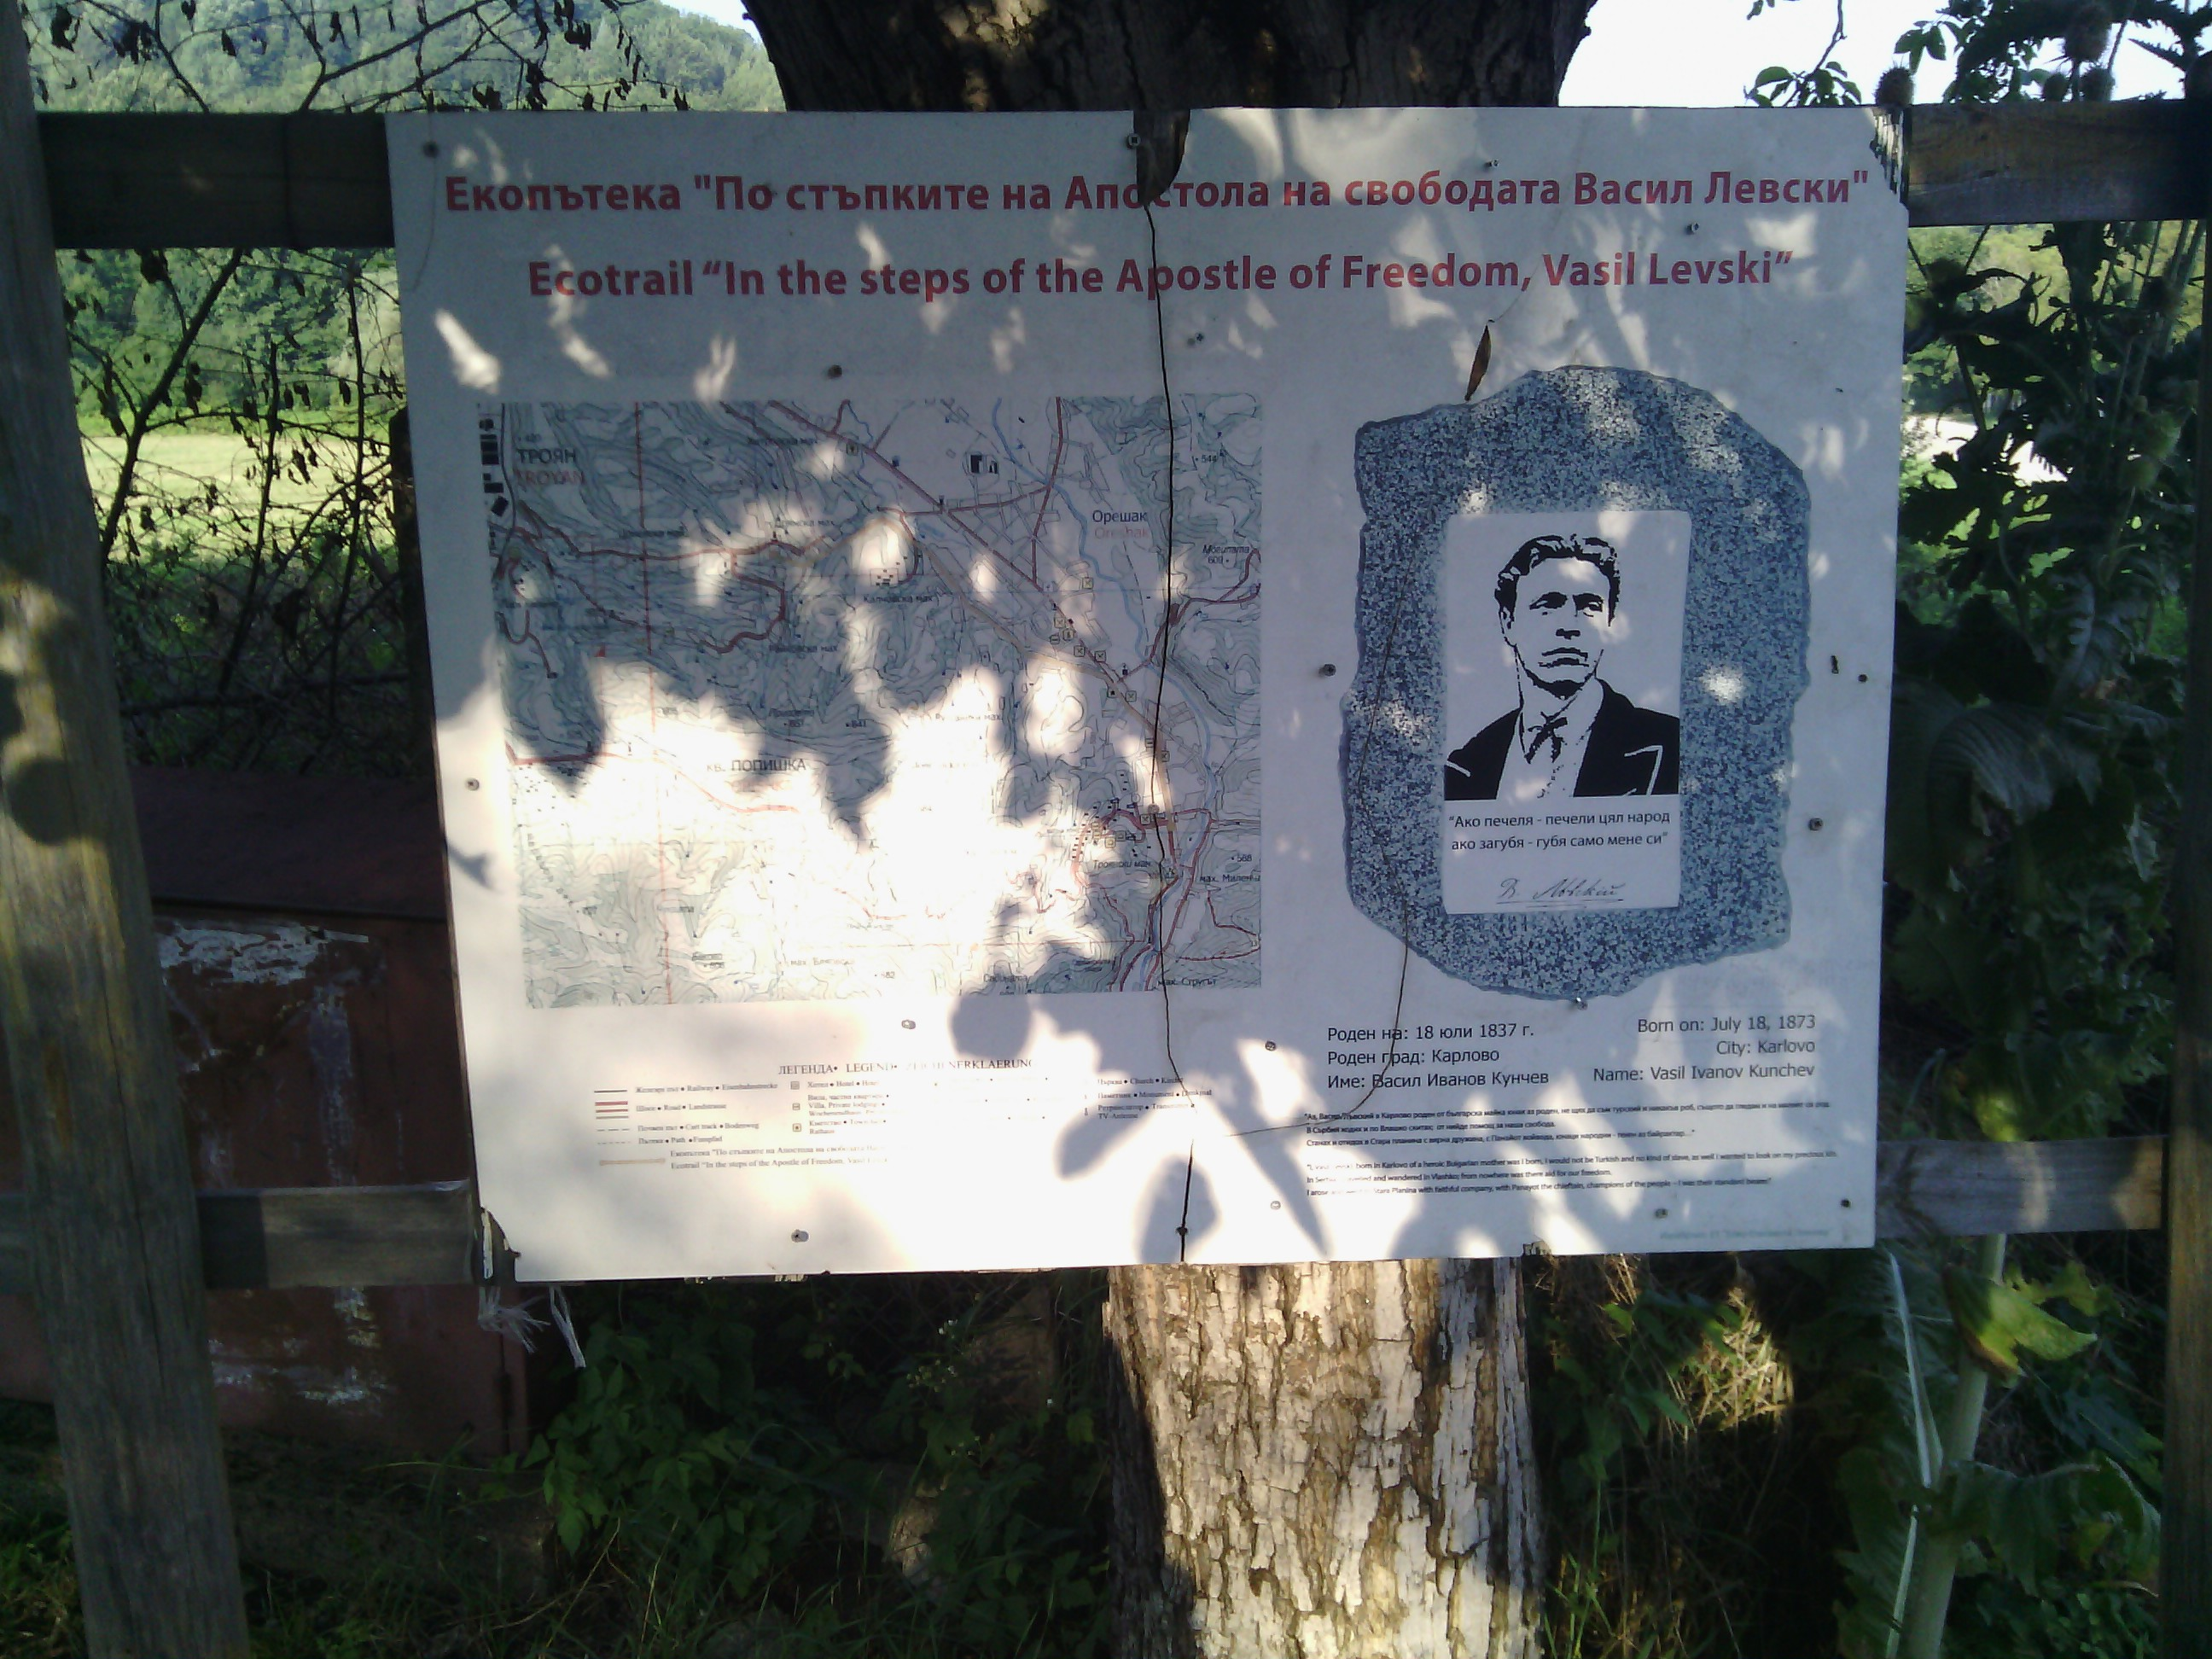 Eco path in the steps of the Apostle of Freedom Vasil Levsky Bulgaria